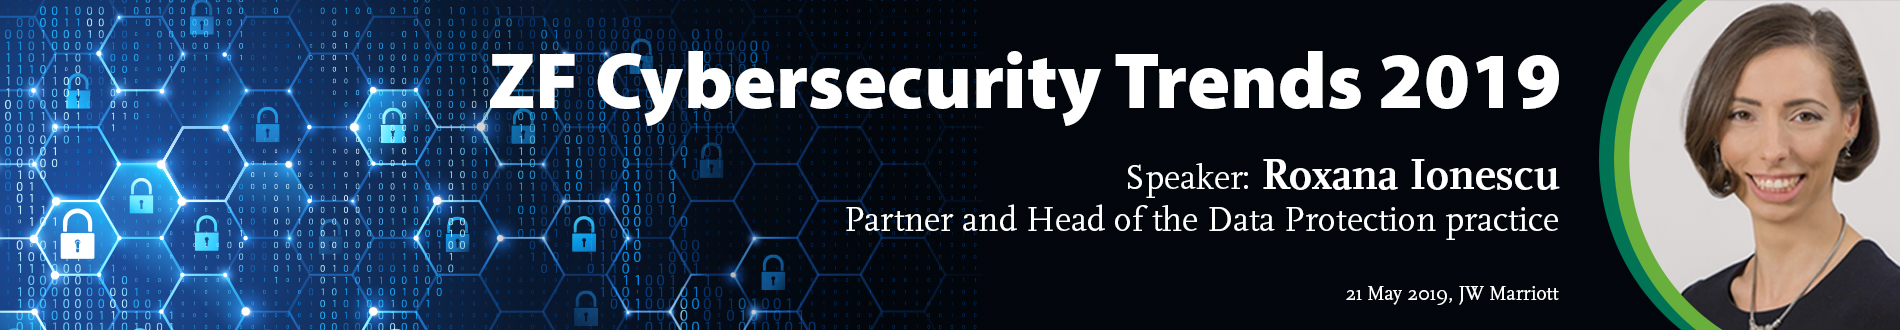 ZF-Cybersecurity-2019